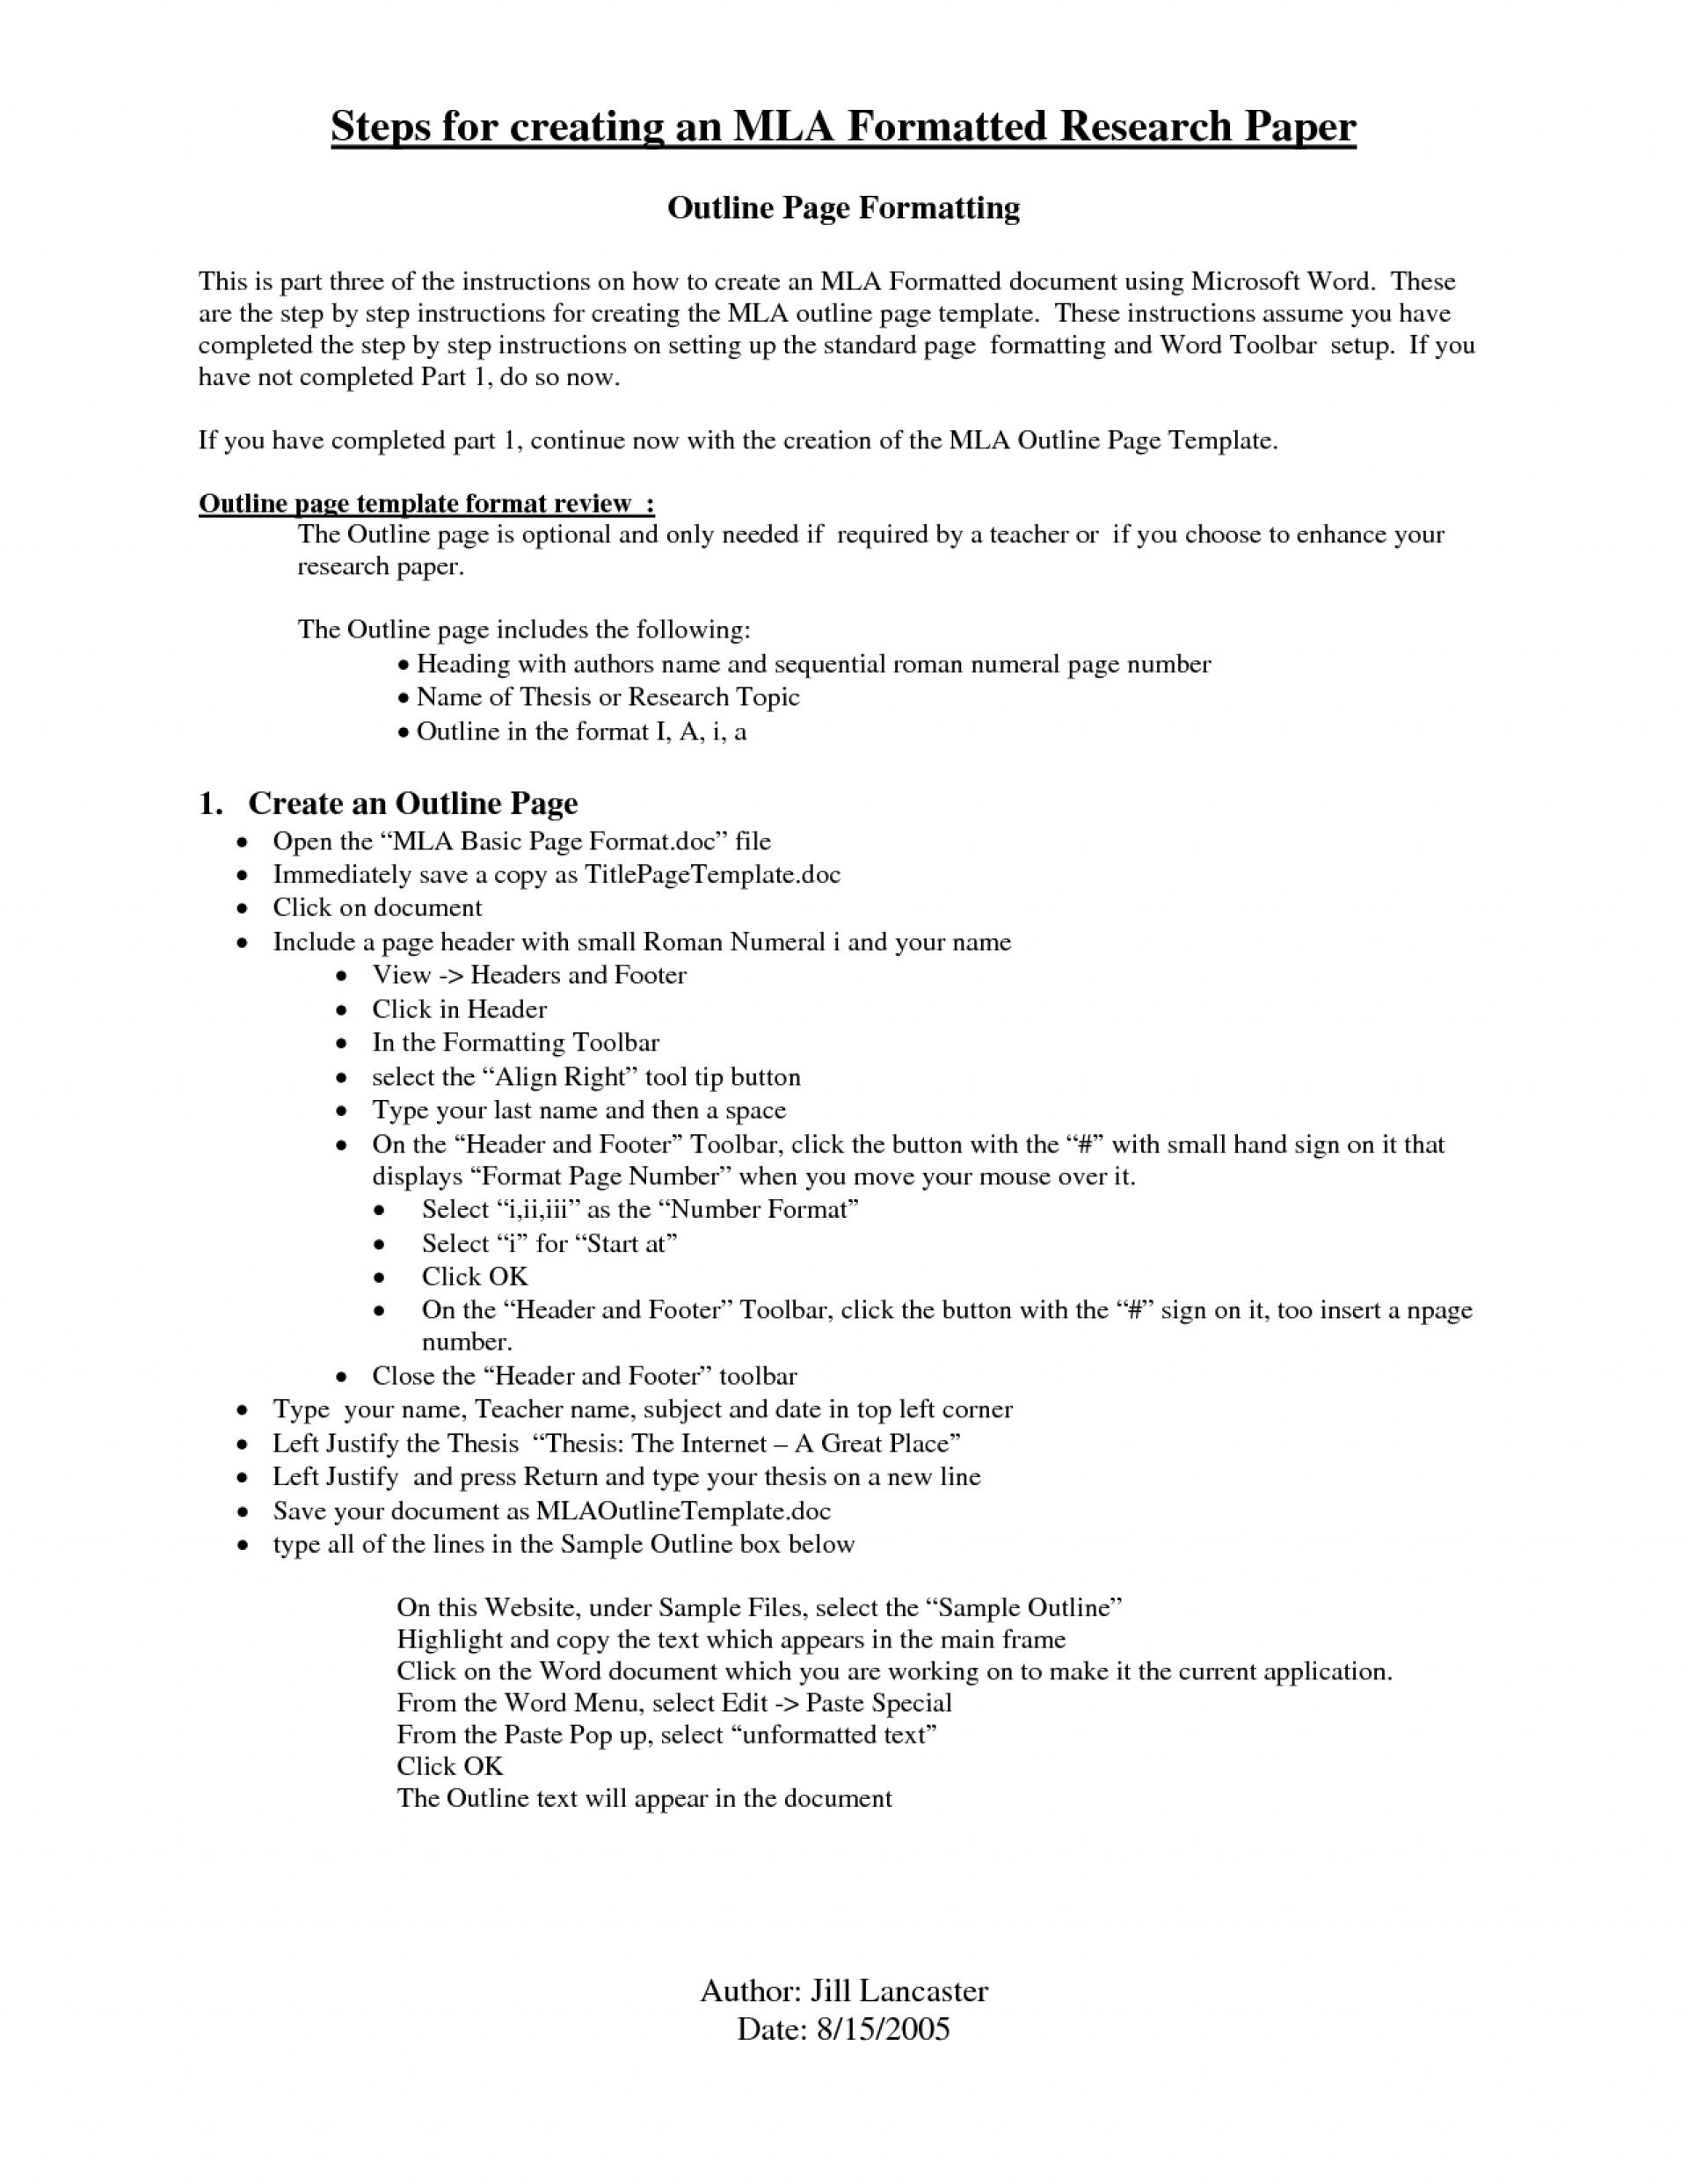 002 Research Paper Mla Format Papers Outline Template 477498 How To Maken For Striking Make An A Using Style 1920